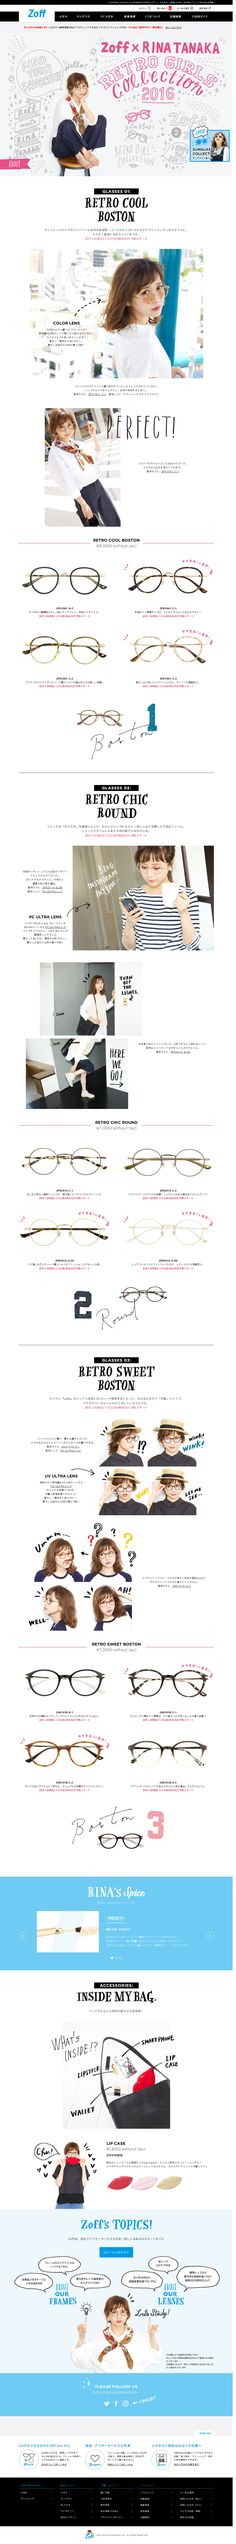 http://www.zoff.co.jp/sp/tanakarina/glasses2016/